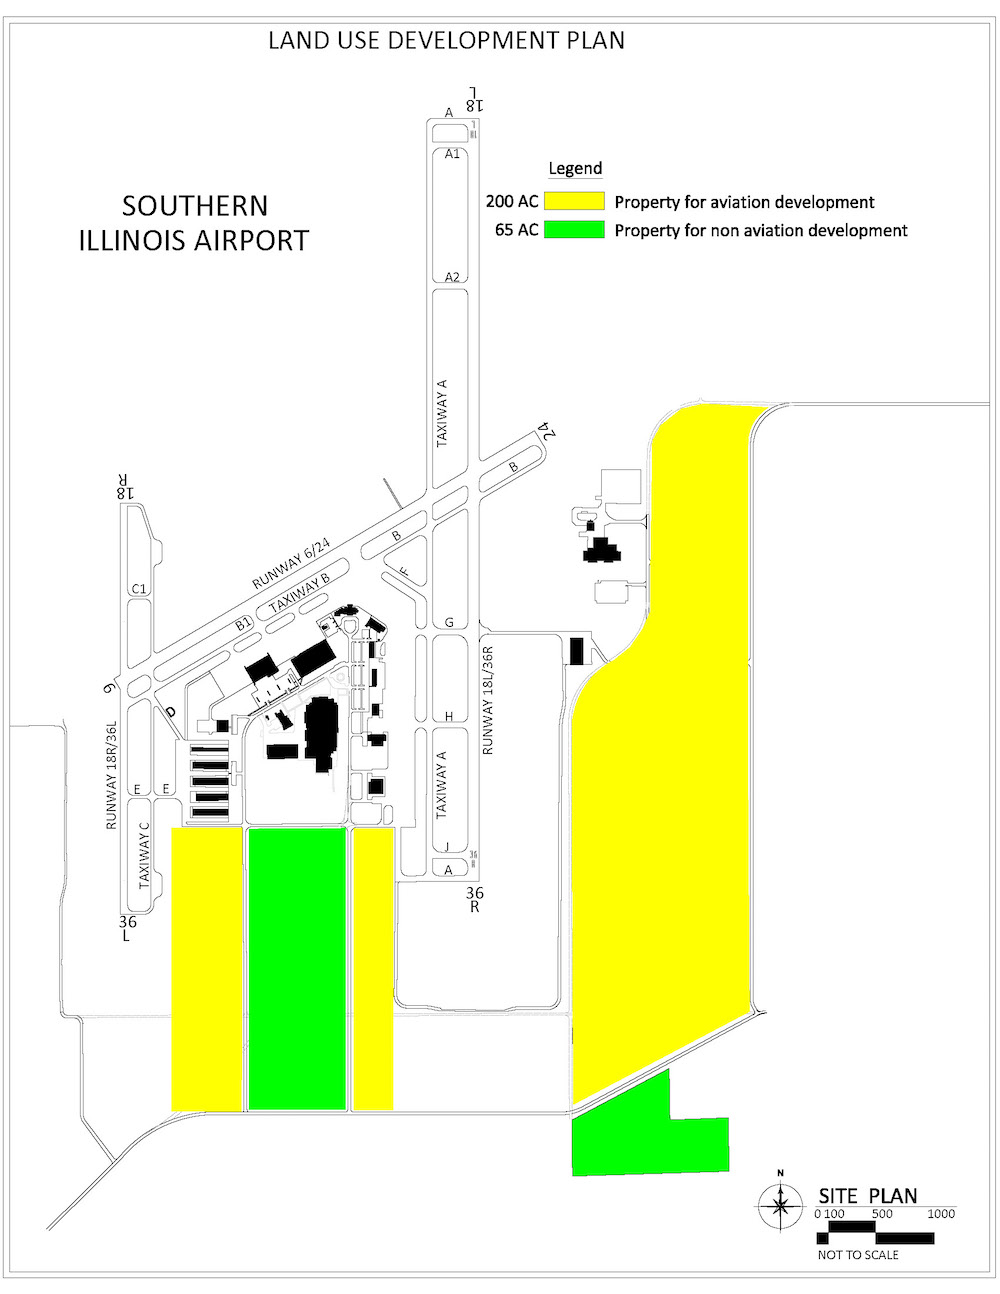 Tech Park | Southern Illinois Airport - 20160829 Land Use Plan